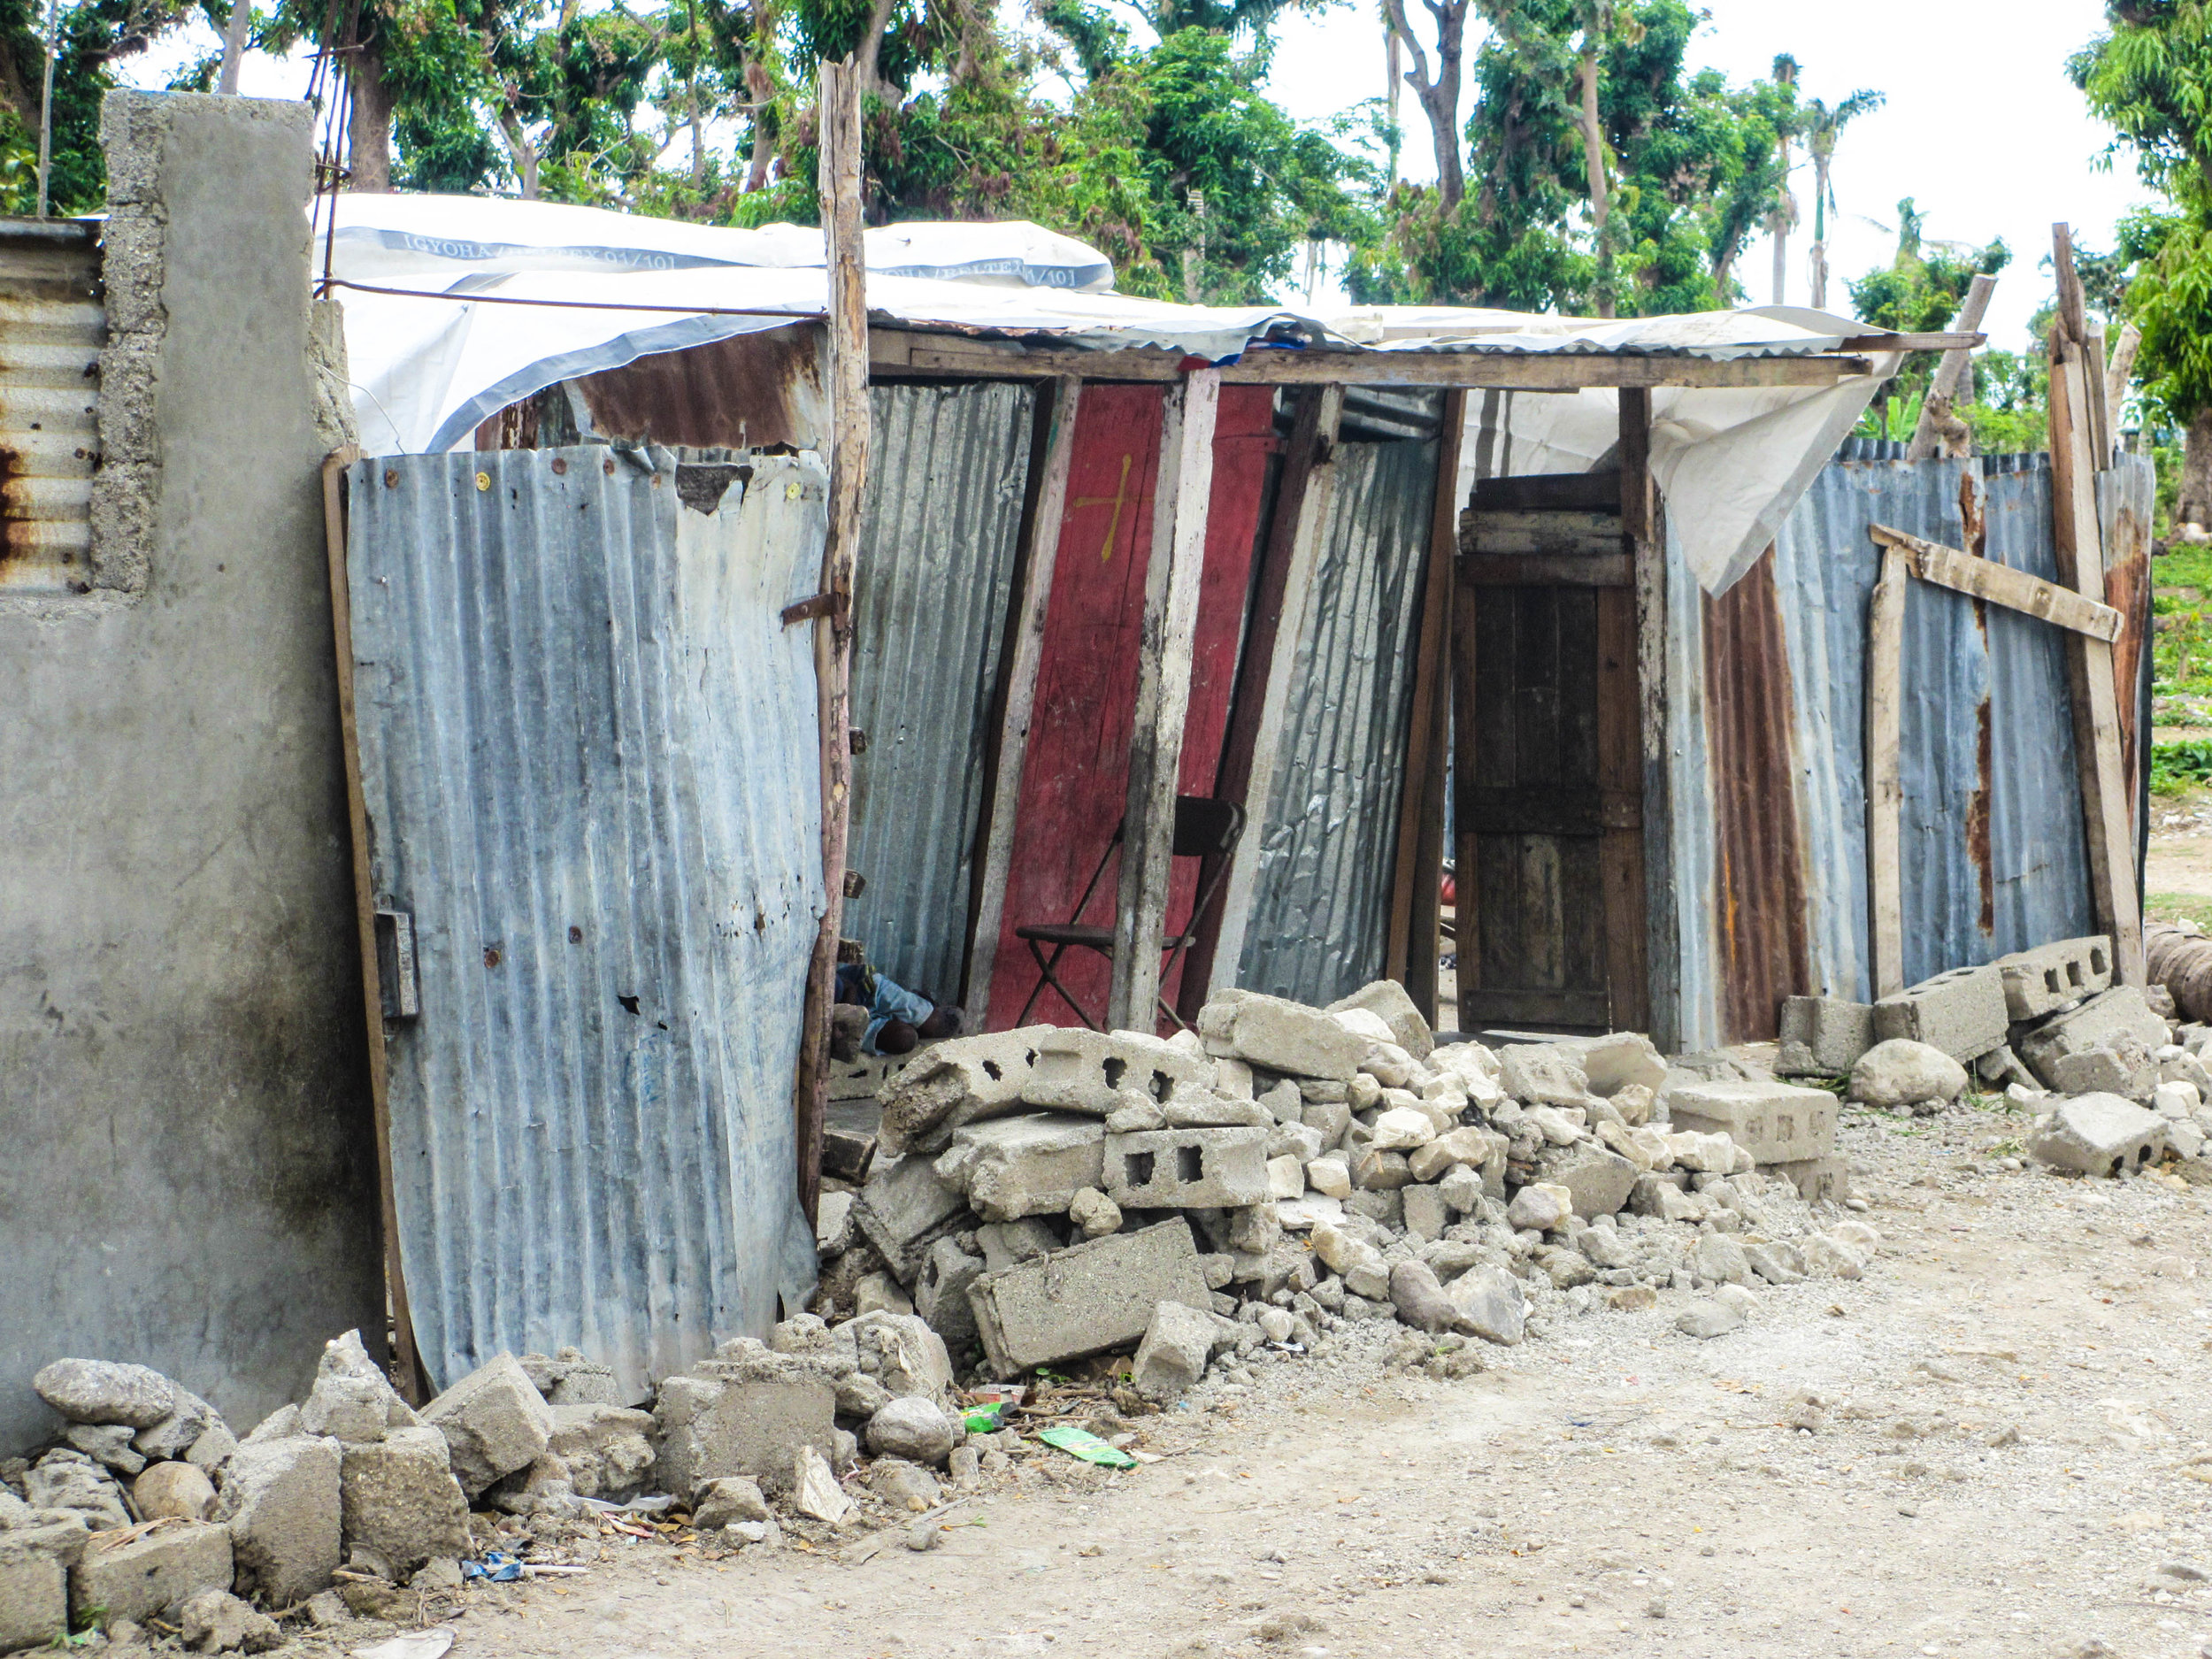 Repairing homes remains one of the largest challenges facing Haiti and hundreds of thousands whose homes were damaged or destroyed by the storm, especially for those in the more remote, mountain communities. While work is ongoing, progress remains hampered by logistical and funding challenges.